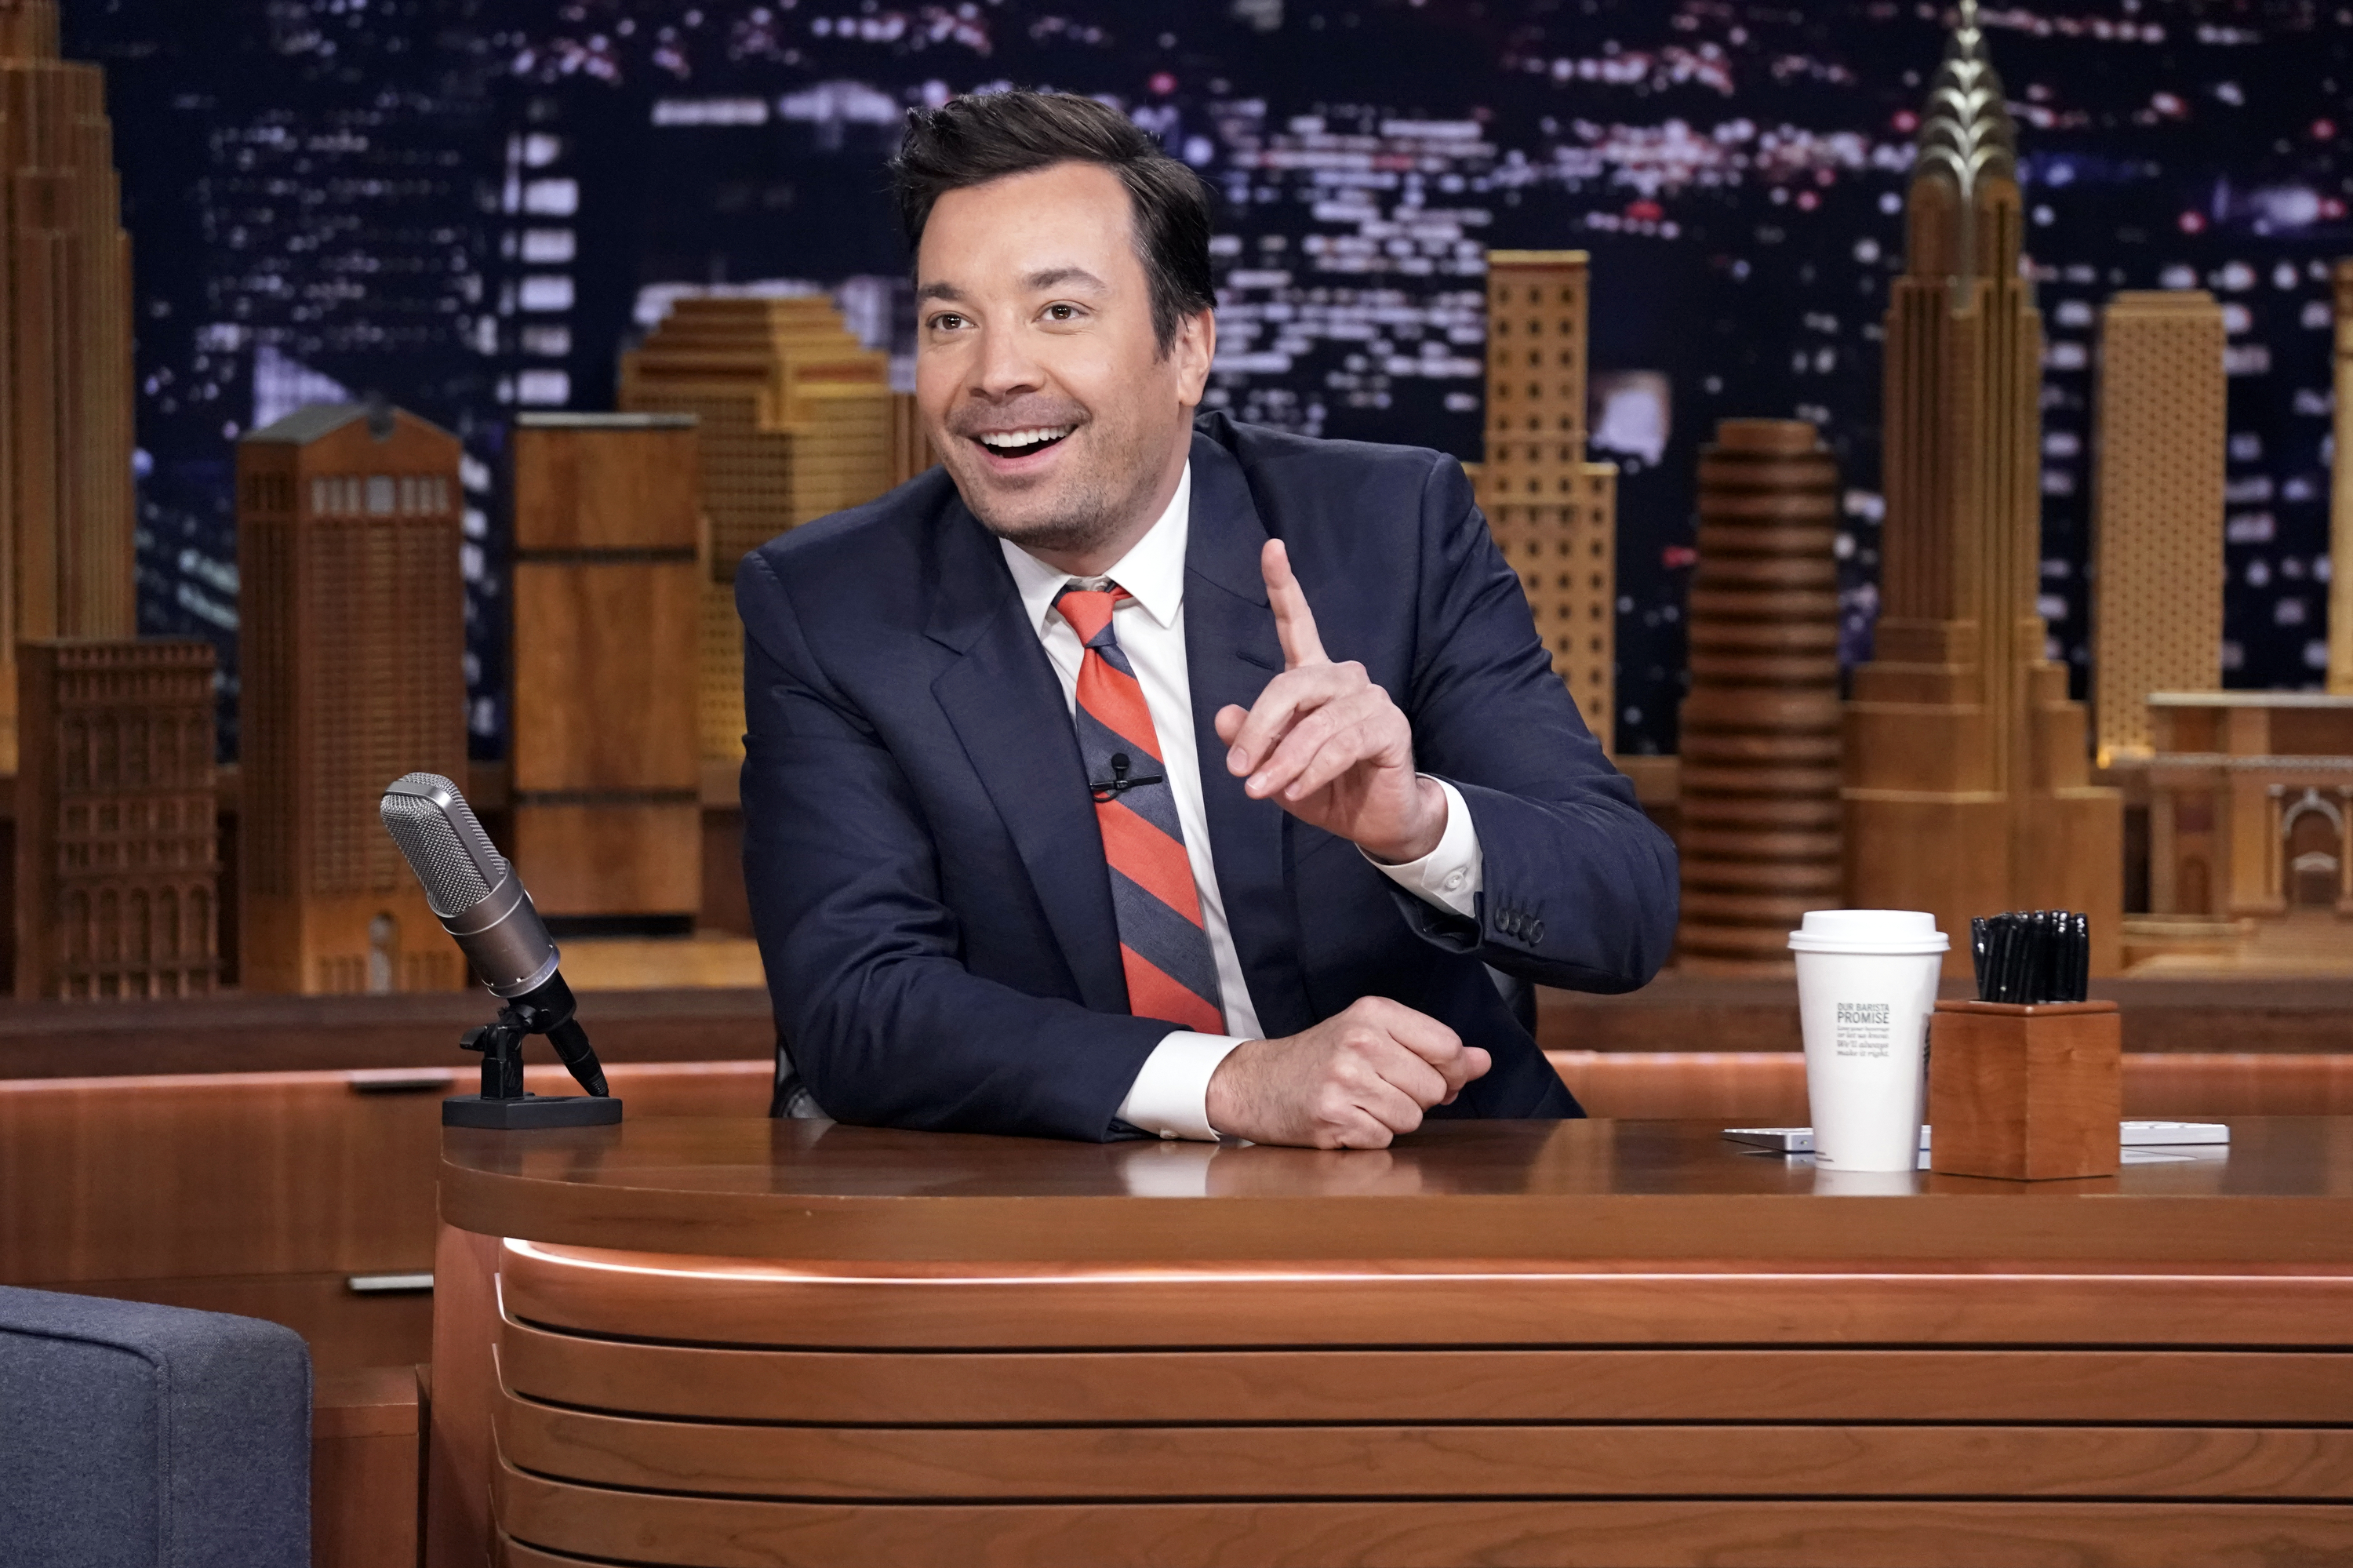 Jimmy Fallon Sitting at his Desk Pointing Up on The Tonight Show Starring Jimmy Fallon